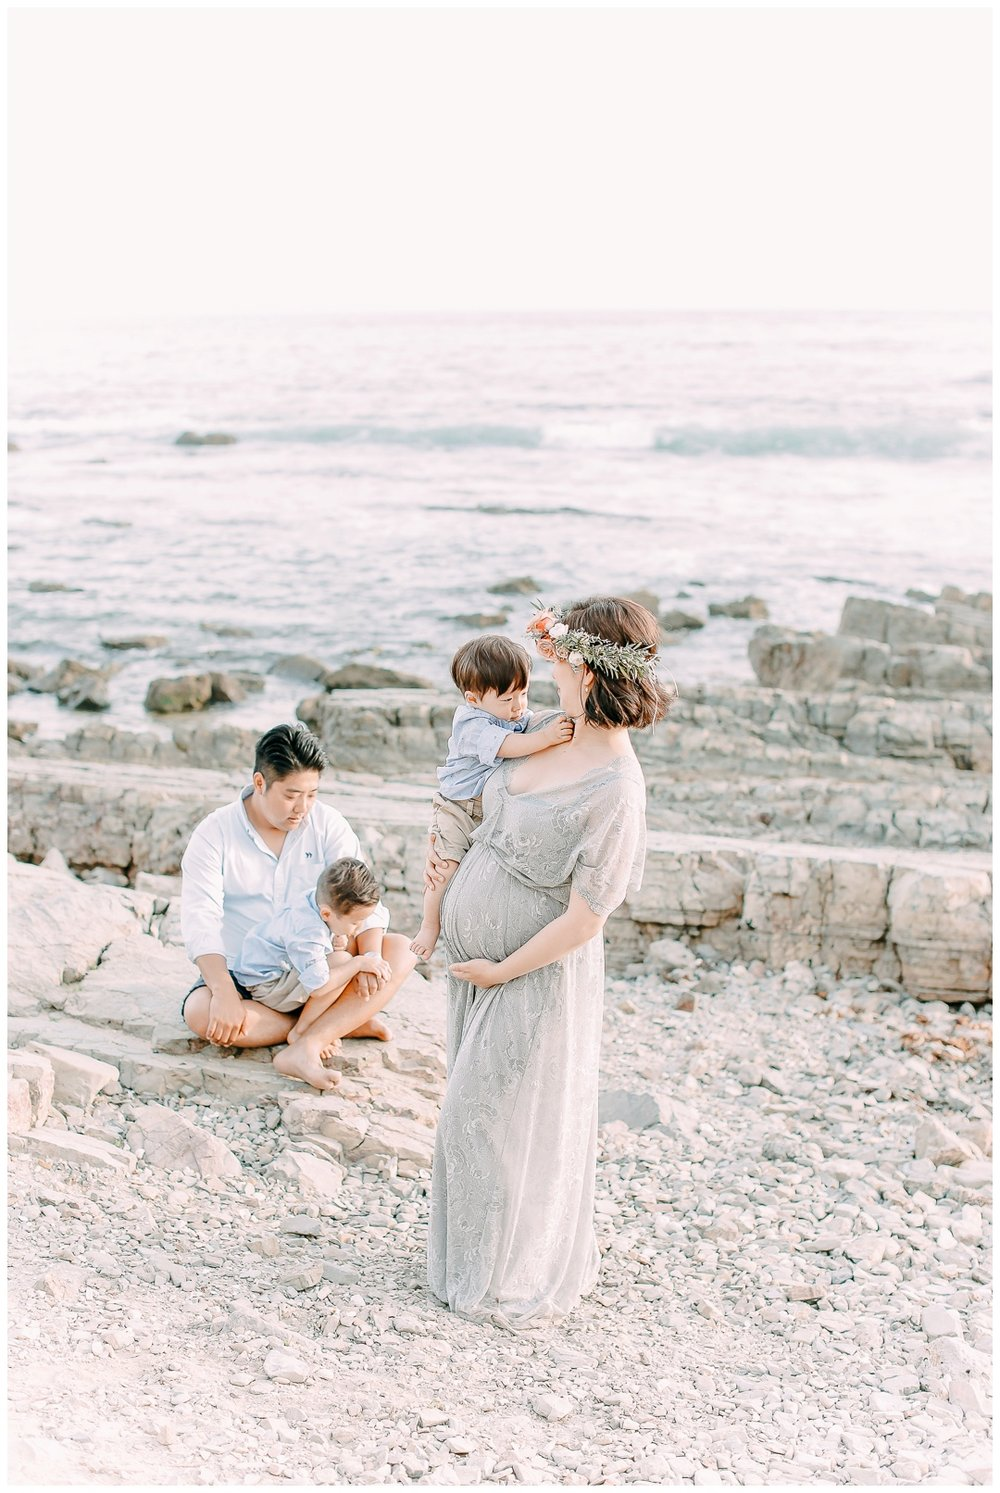 Newport_Beach_Maternity_Photographer_Orange_County_Maternity_Photography_Cori_Kleckner_Photography_Orange_County_Family_Photographer_Beach_Maternity_Session_1114.jpg